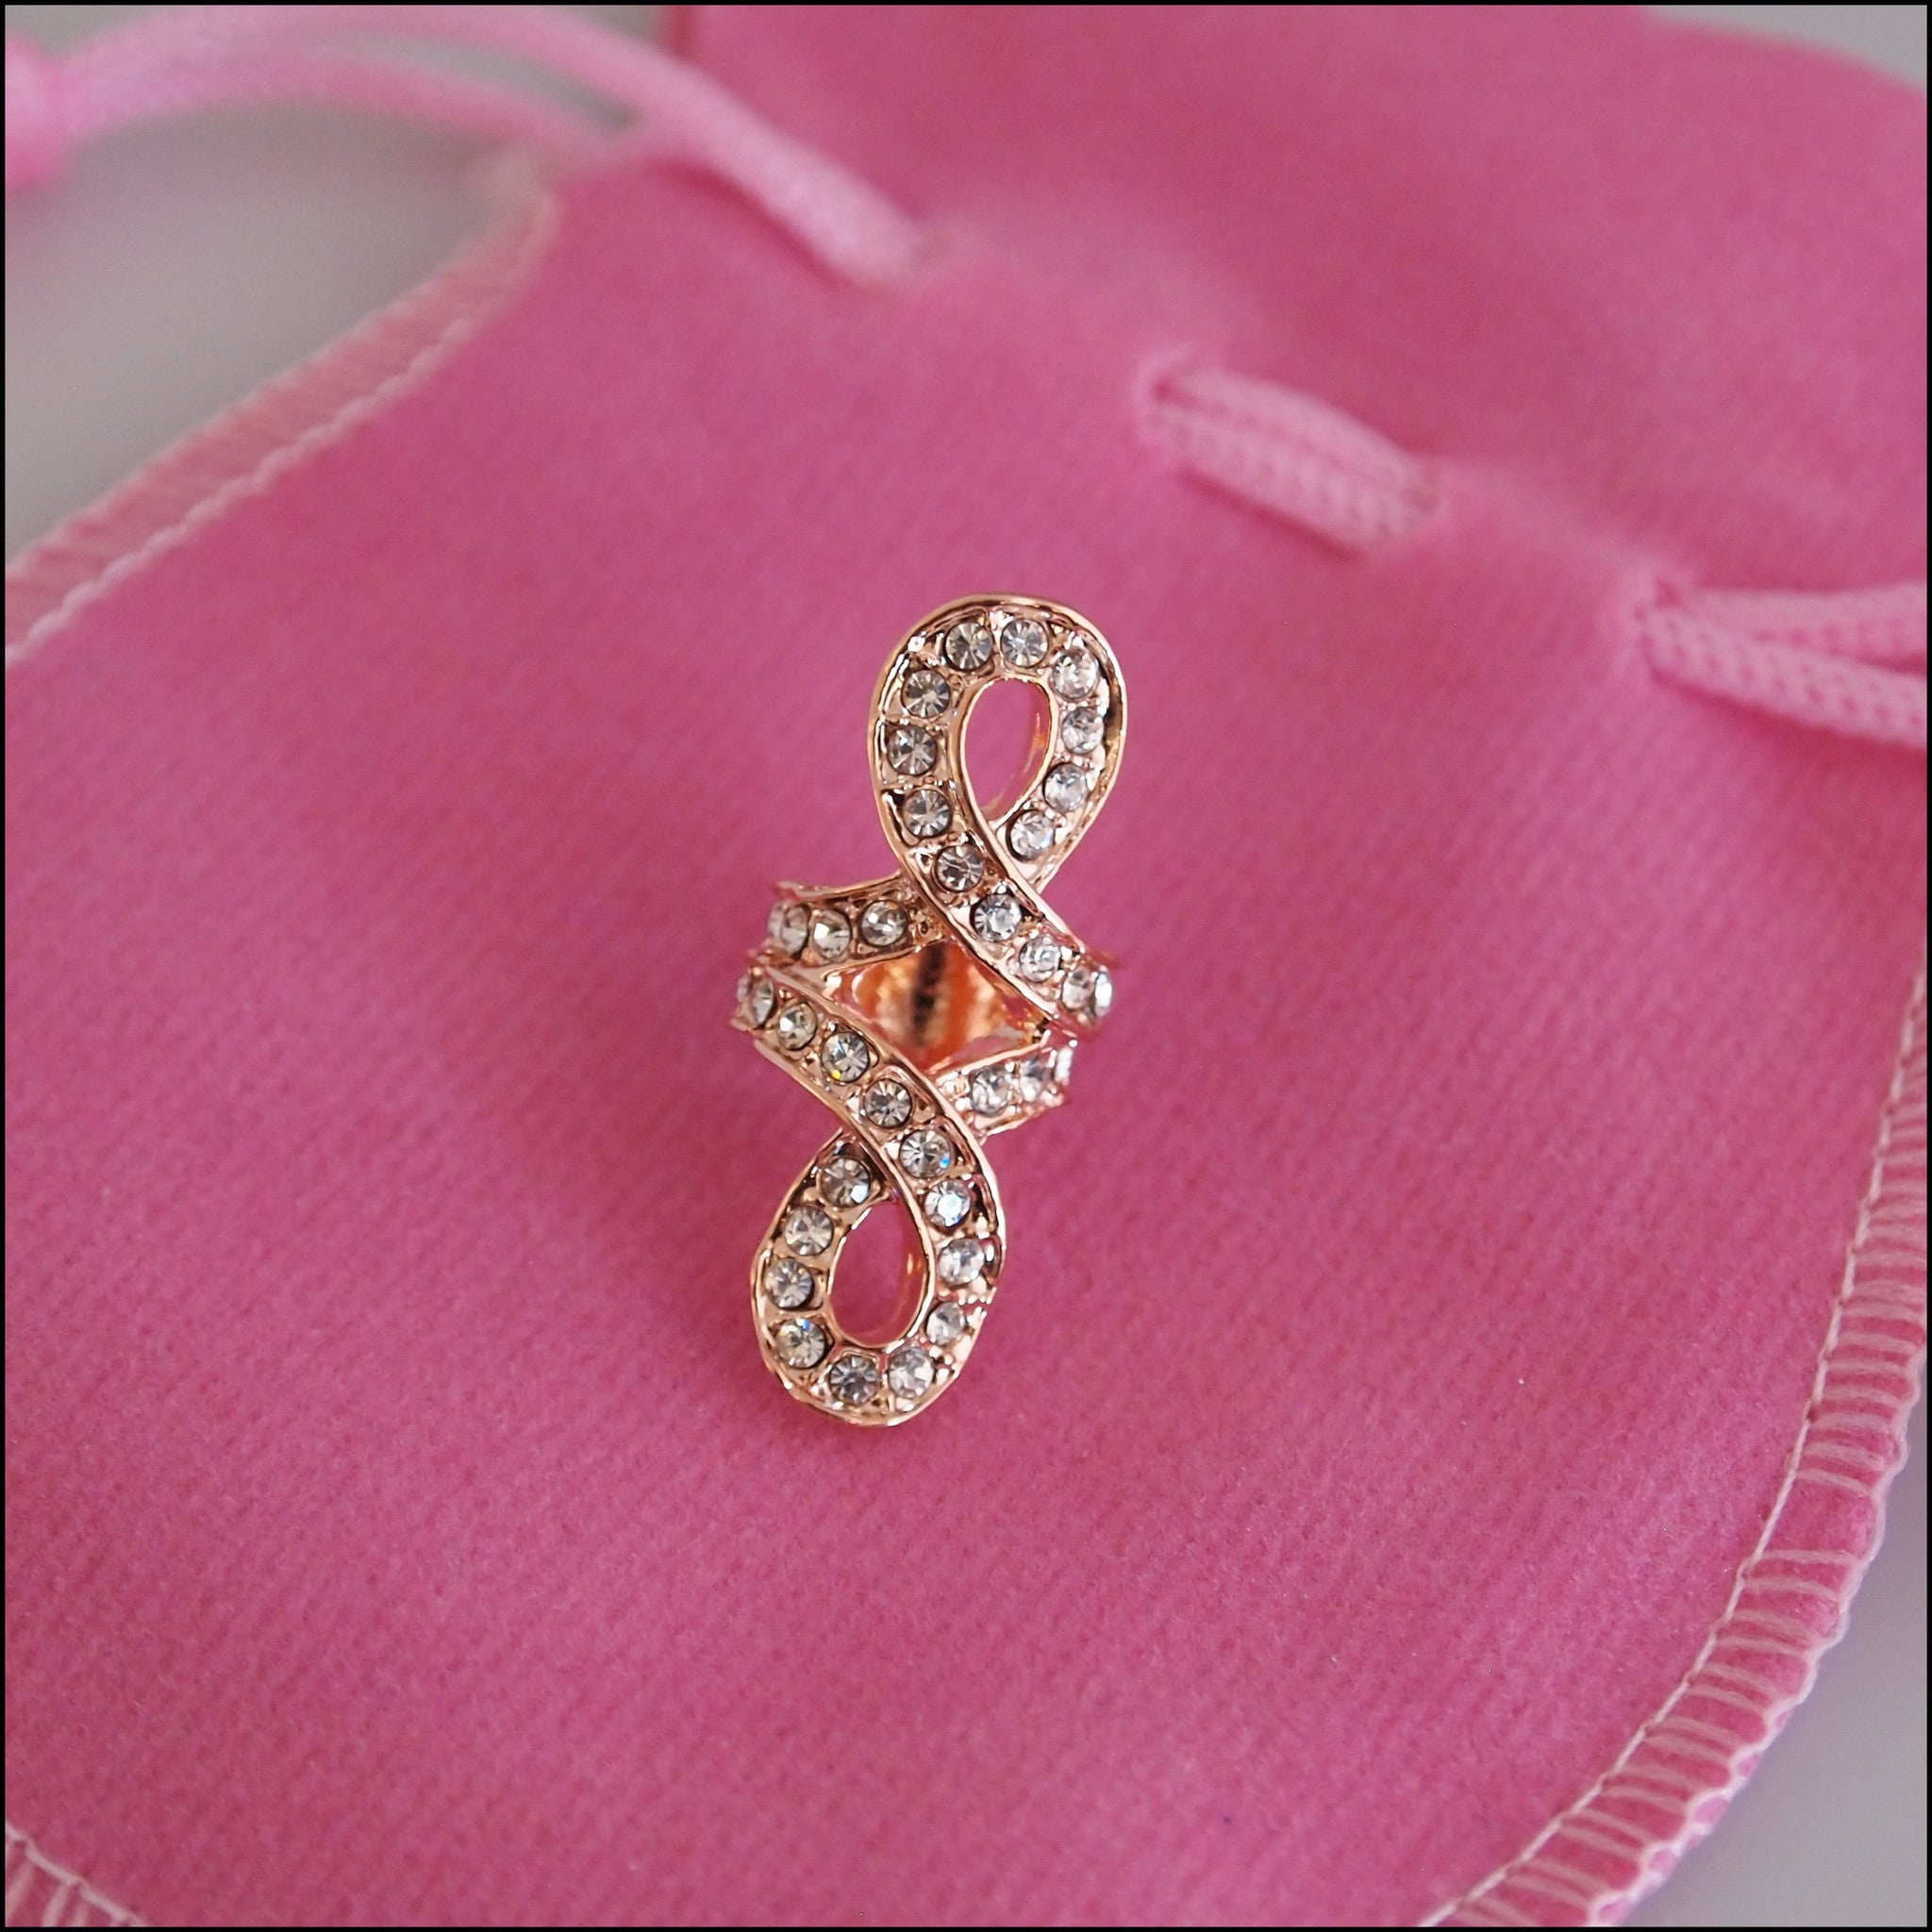 Large Crystal Knot Charm - Rose Gold Plated - Find Something Special